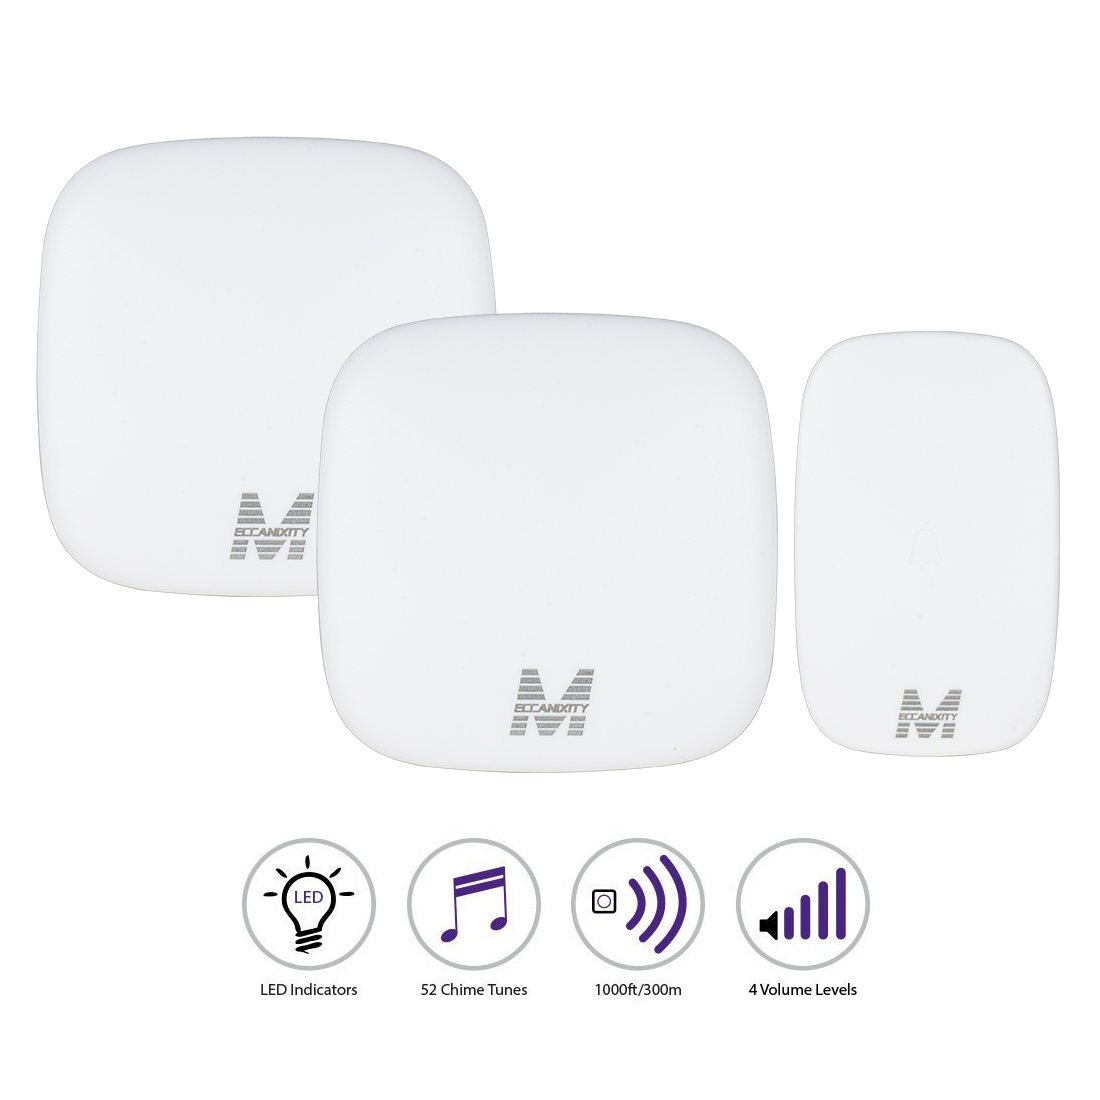 Meccanixity Us Plug Ac110 130v Wireless Doorbell 2 Receivers 1 Schematic Transmitter White